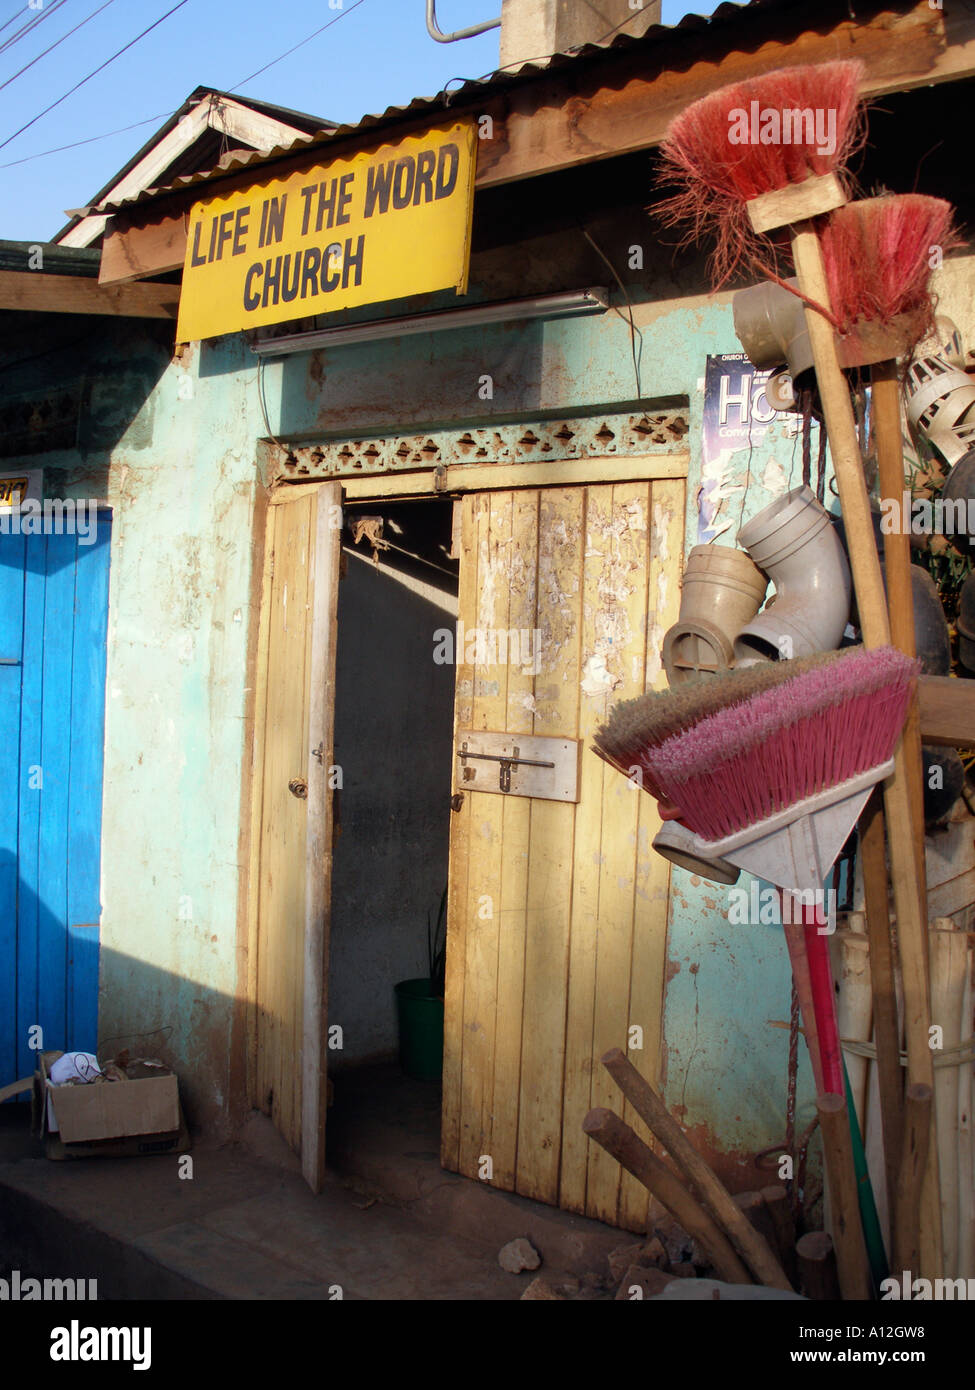 Life in the Word pentecostal church in a slum area of Kampala, Uganda - Stock Image